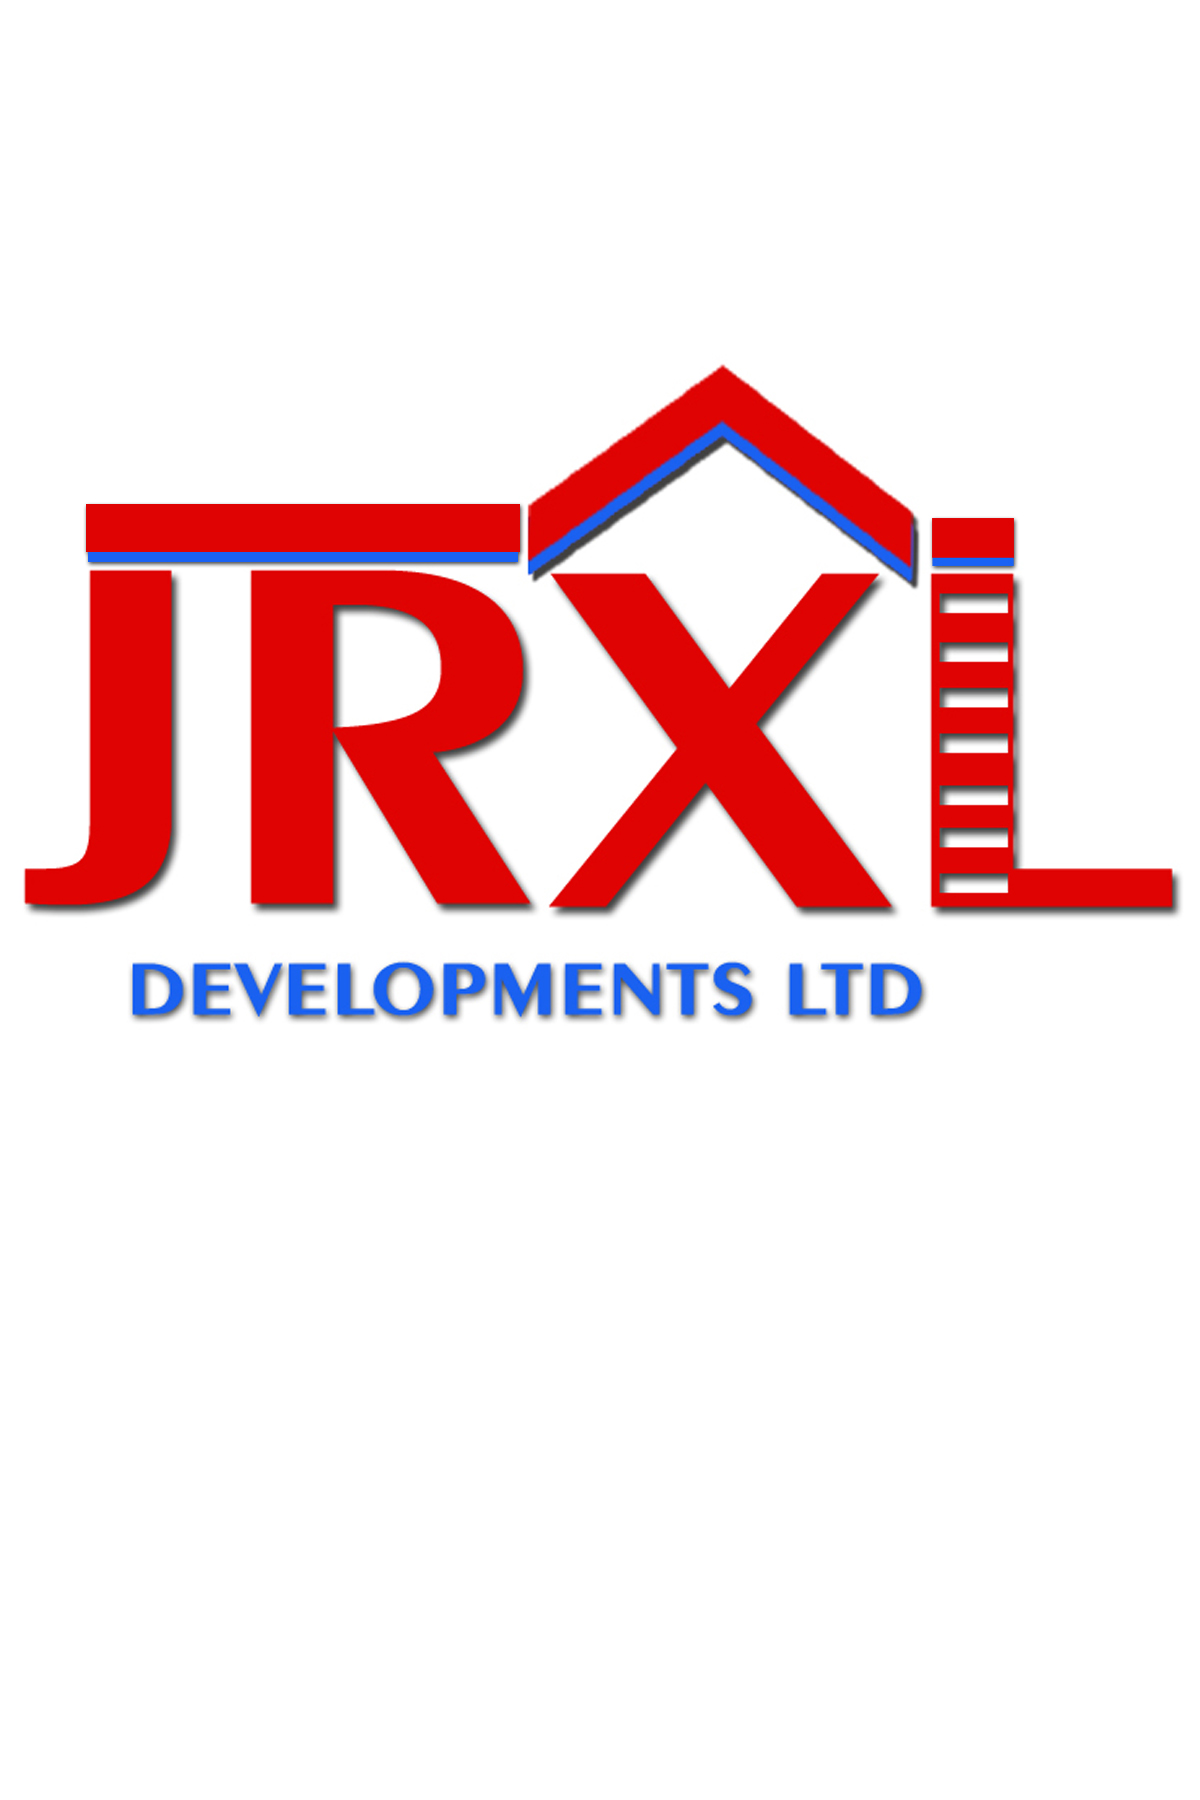 Logo Design by intentio_graphikos - Entry No. 8 in the Logo Design Contest JRXL DEVELOPMENTS LTD Logo Design.